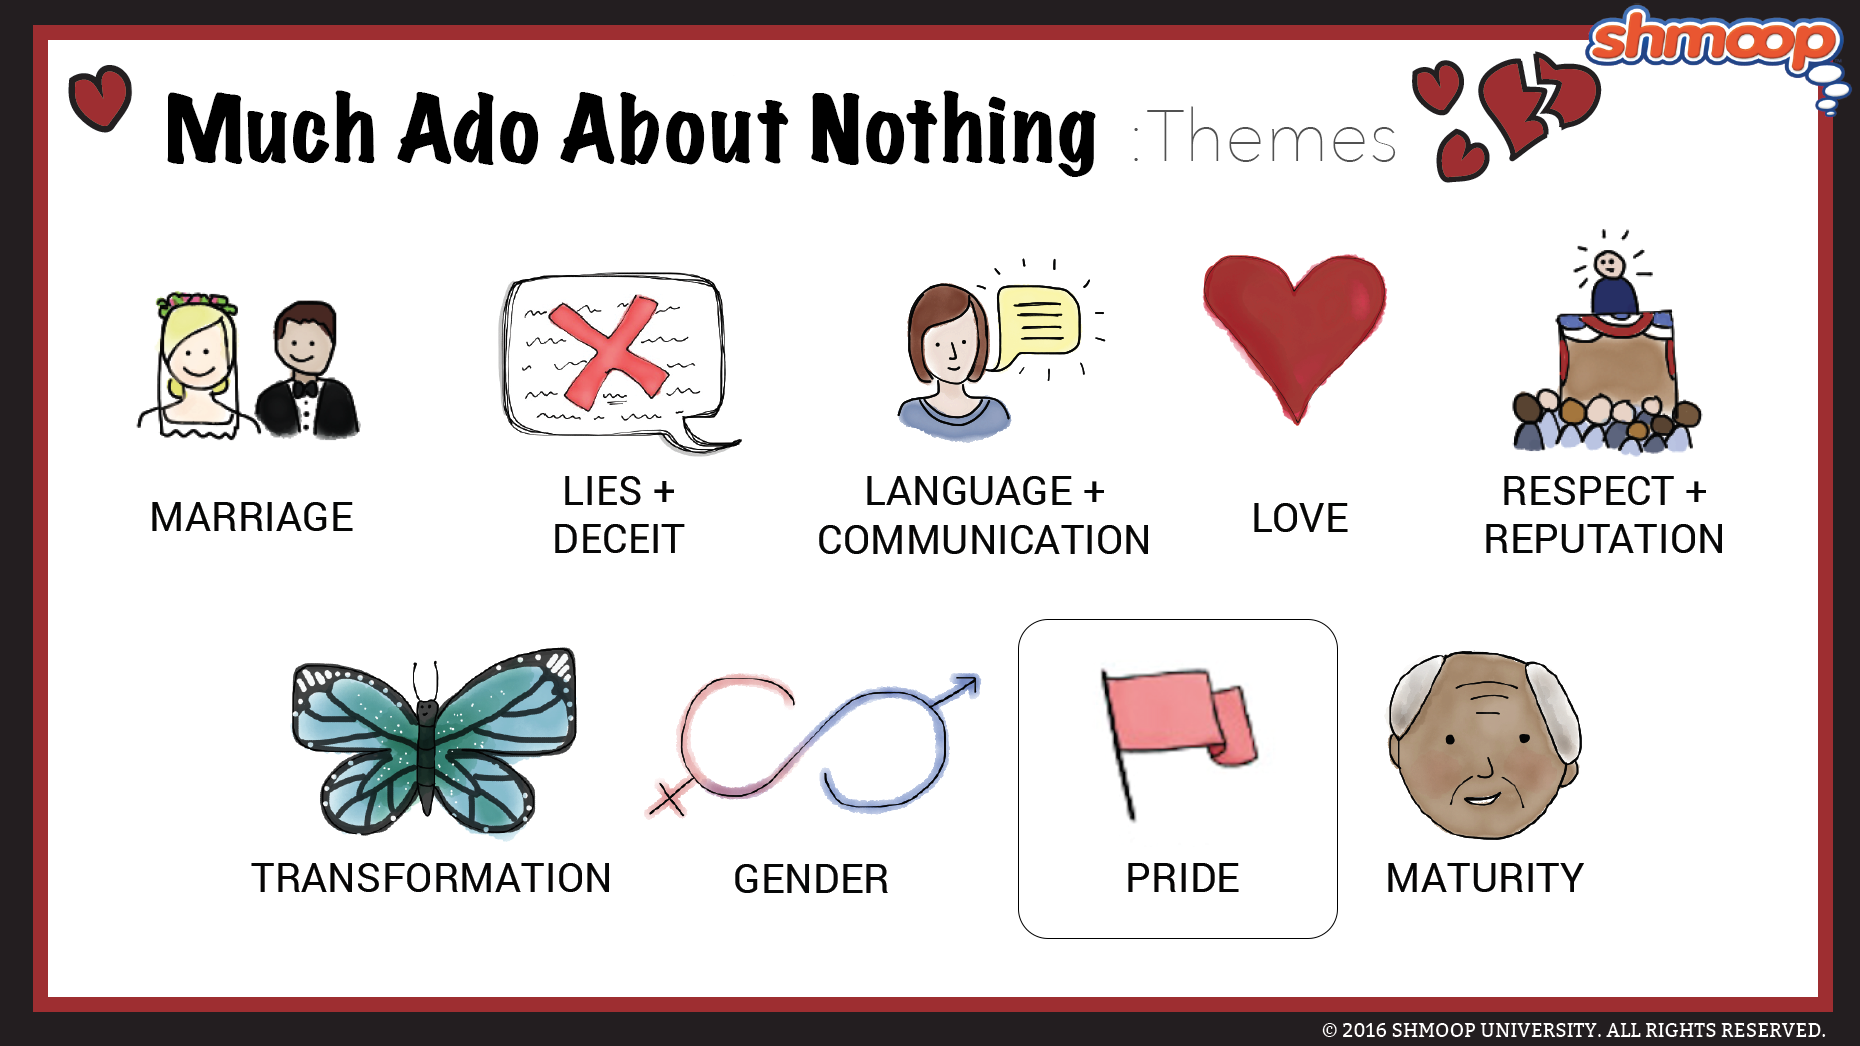 an analysis of much ado about nothing by william shakespeare Chapter notes & analysis these free notes also contain quotes and themes & topics on much ado about nothing by william shakespeare much ado about nothing plot summary.